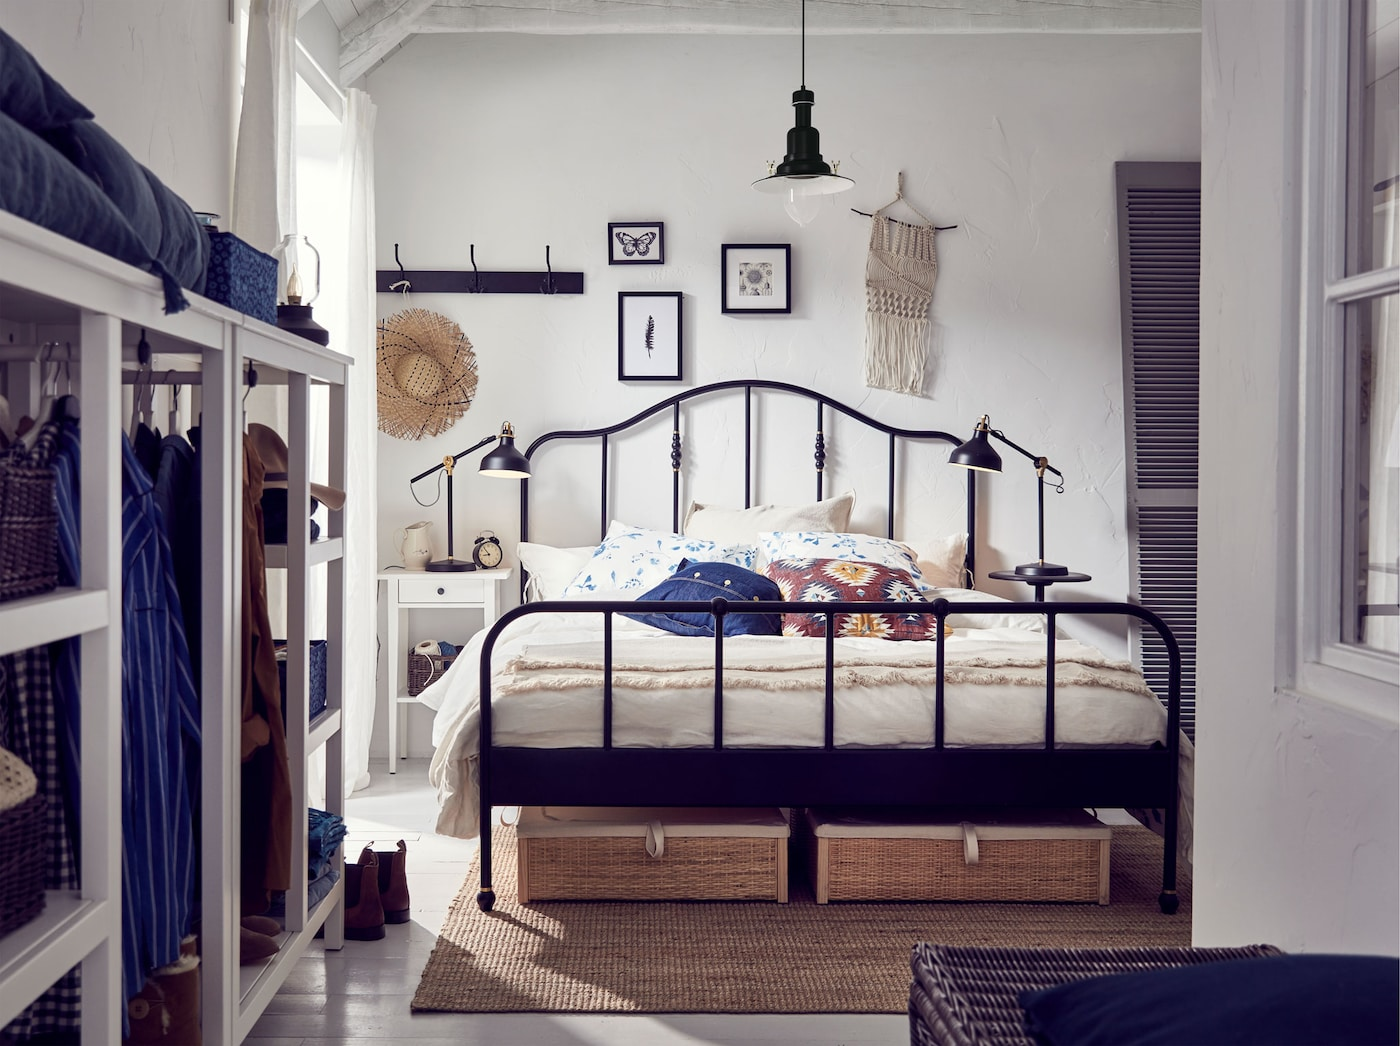 Personalise your own multitasking bedroom IKEA